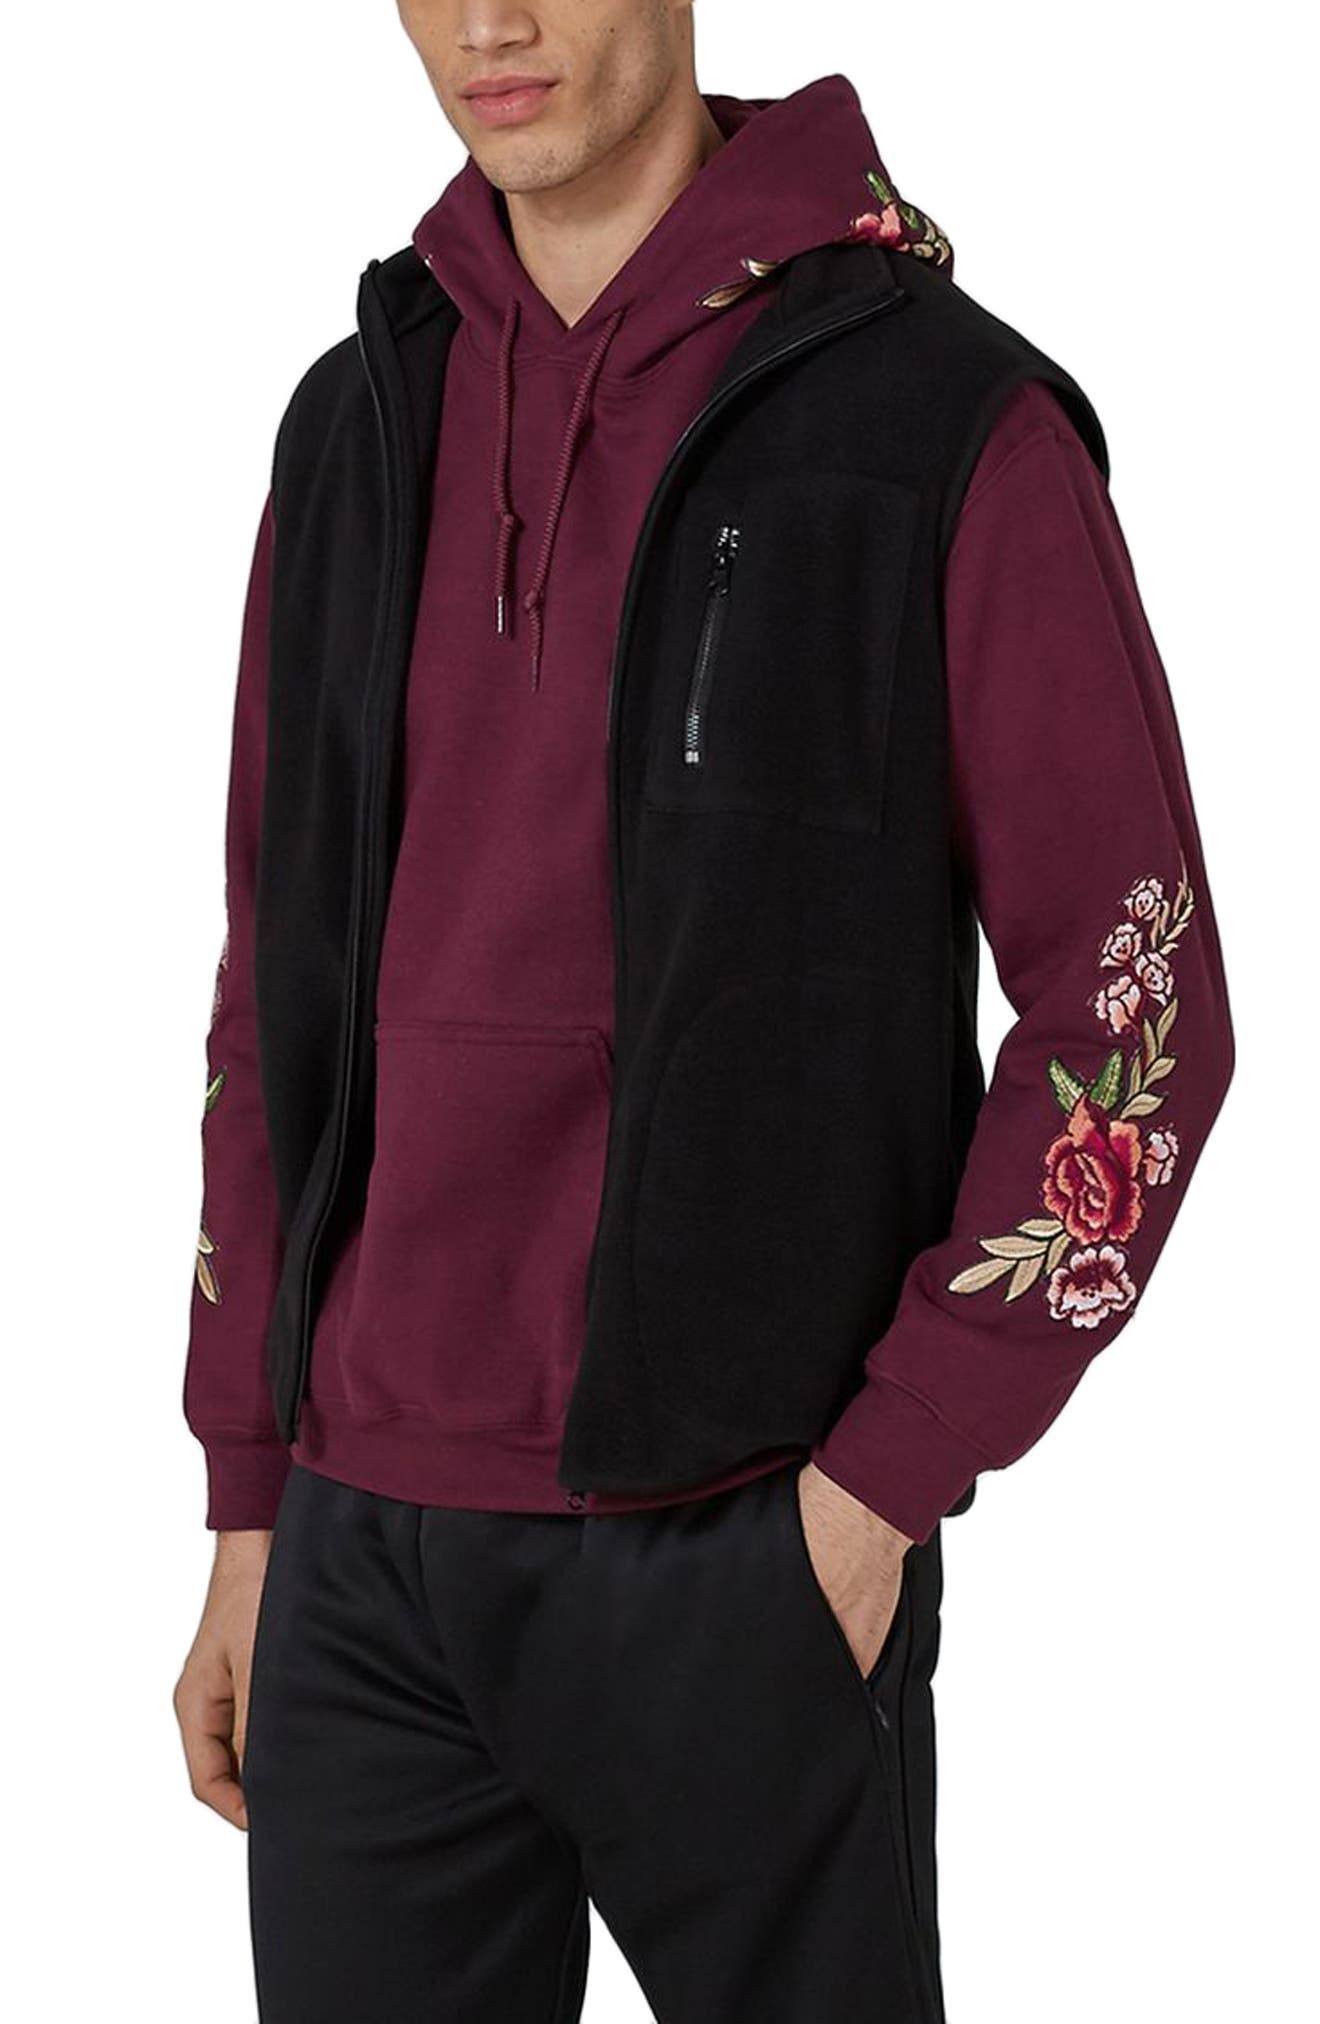 Rose Embroidered Hoodie,                             Main thumbnail 1, color,                             930